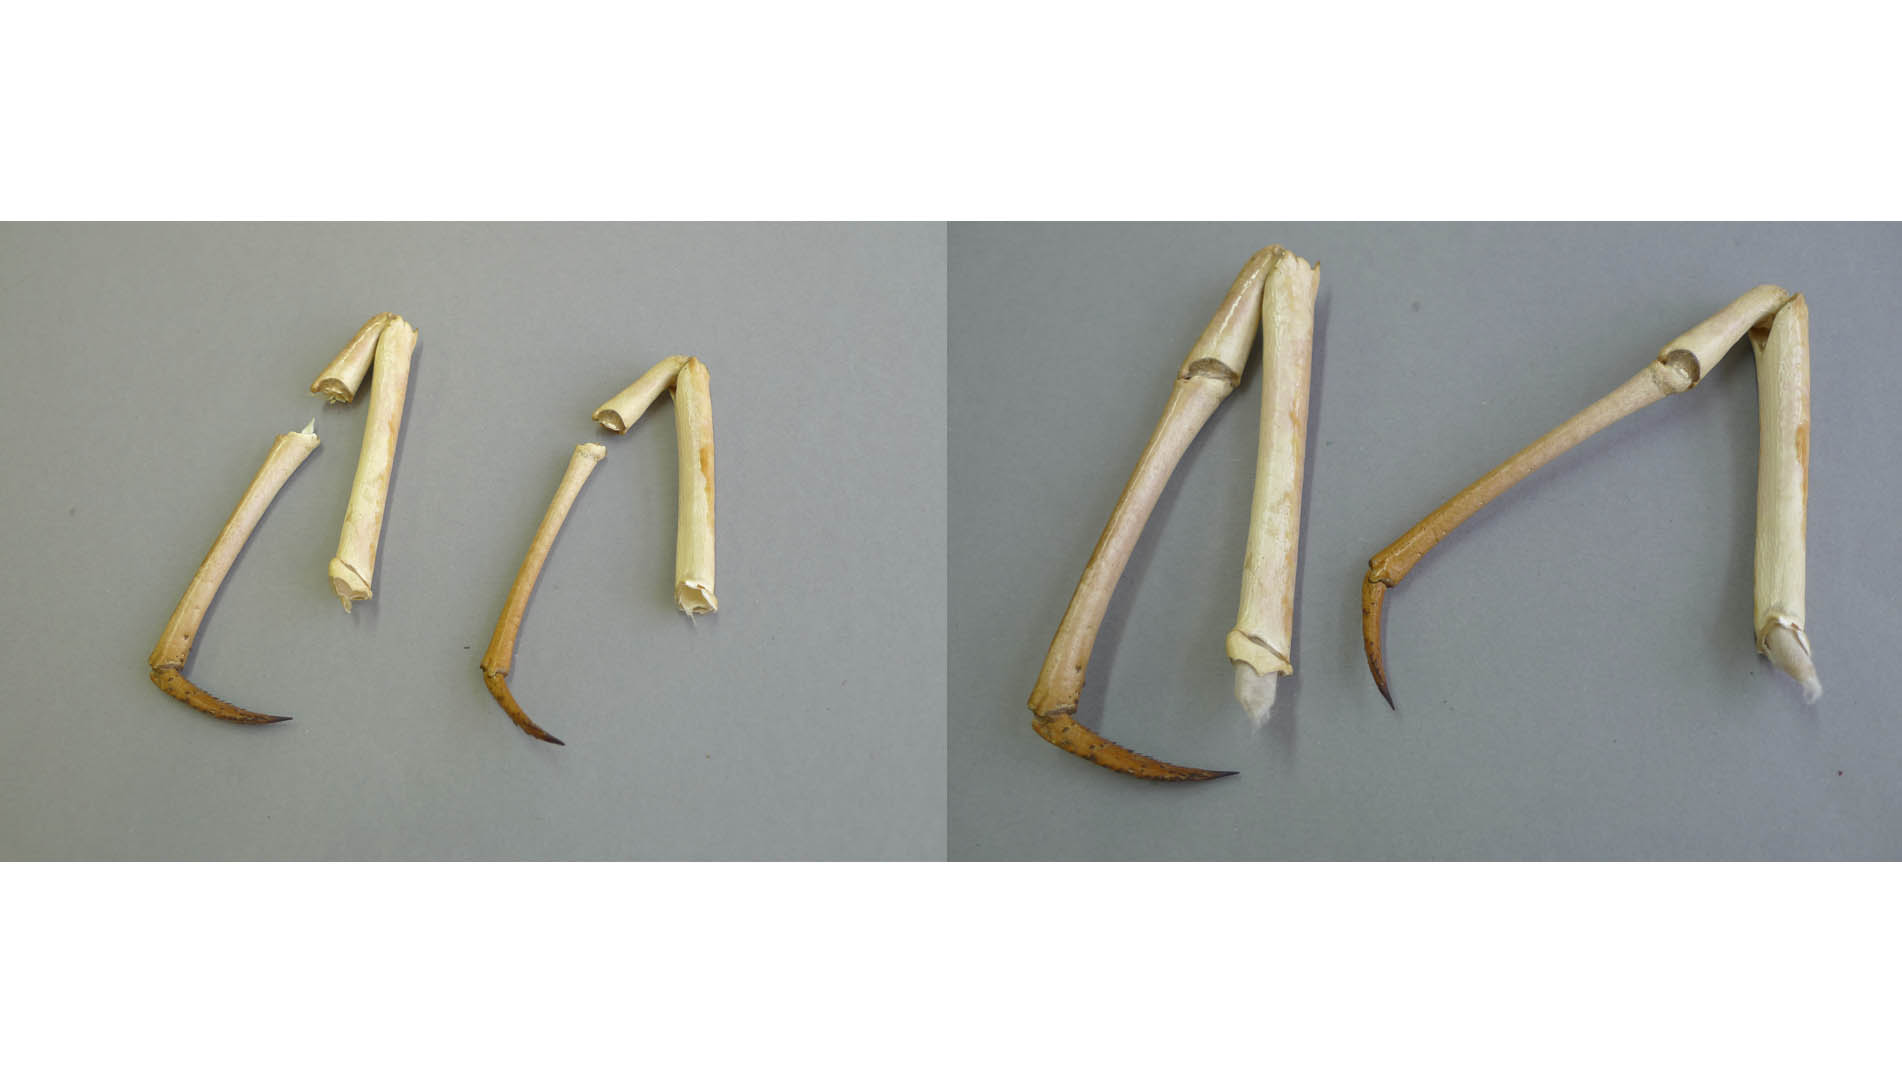 fig 39. Japanese paper tubes were inserted into the legs and these helped to set the legs together. They were supported on the top with veil paper and the result was satisfactory – a strong, stabile and in-noticeable joint.